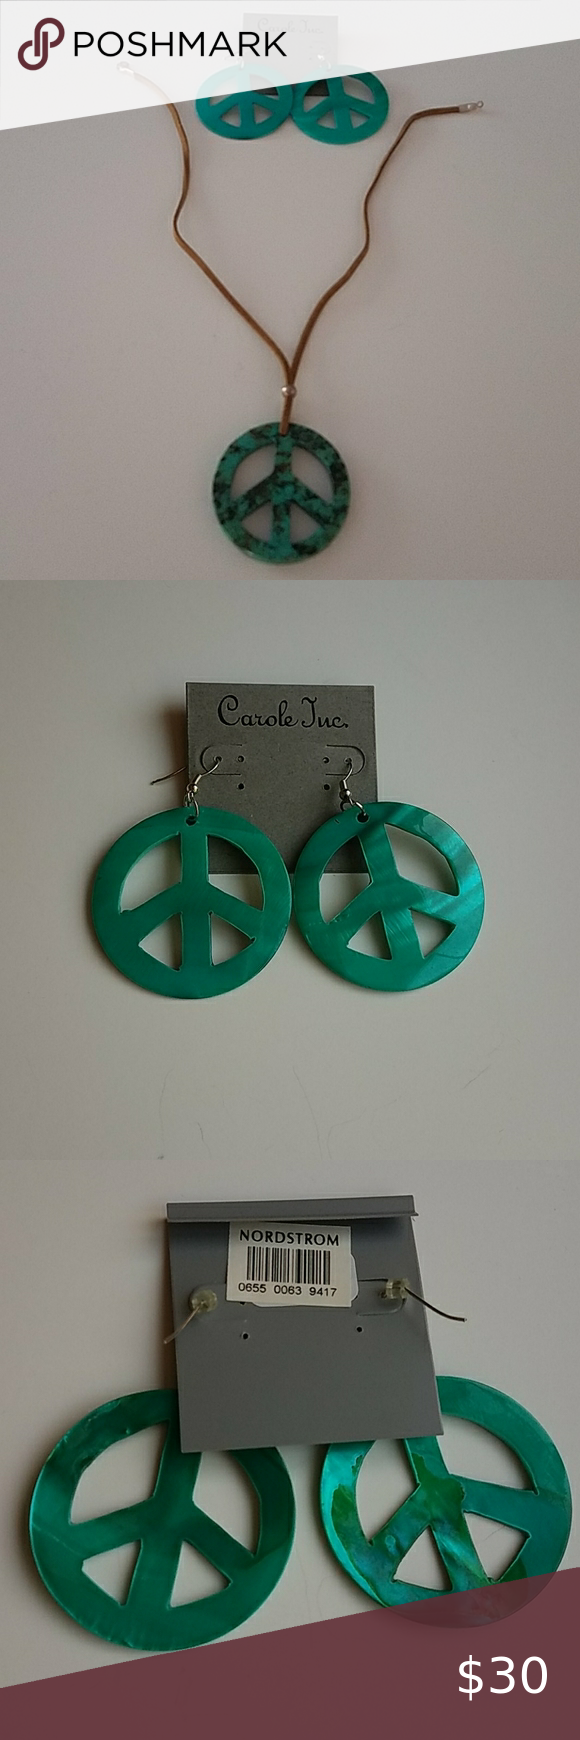 Download Bundle of green boho peace sign necklace, earrings in 2020 ...